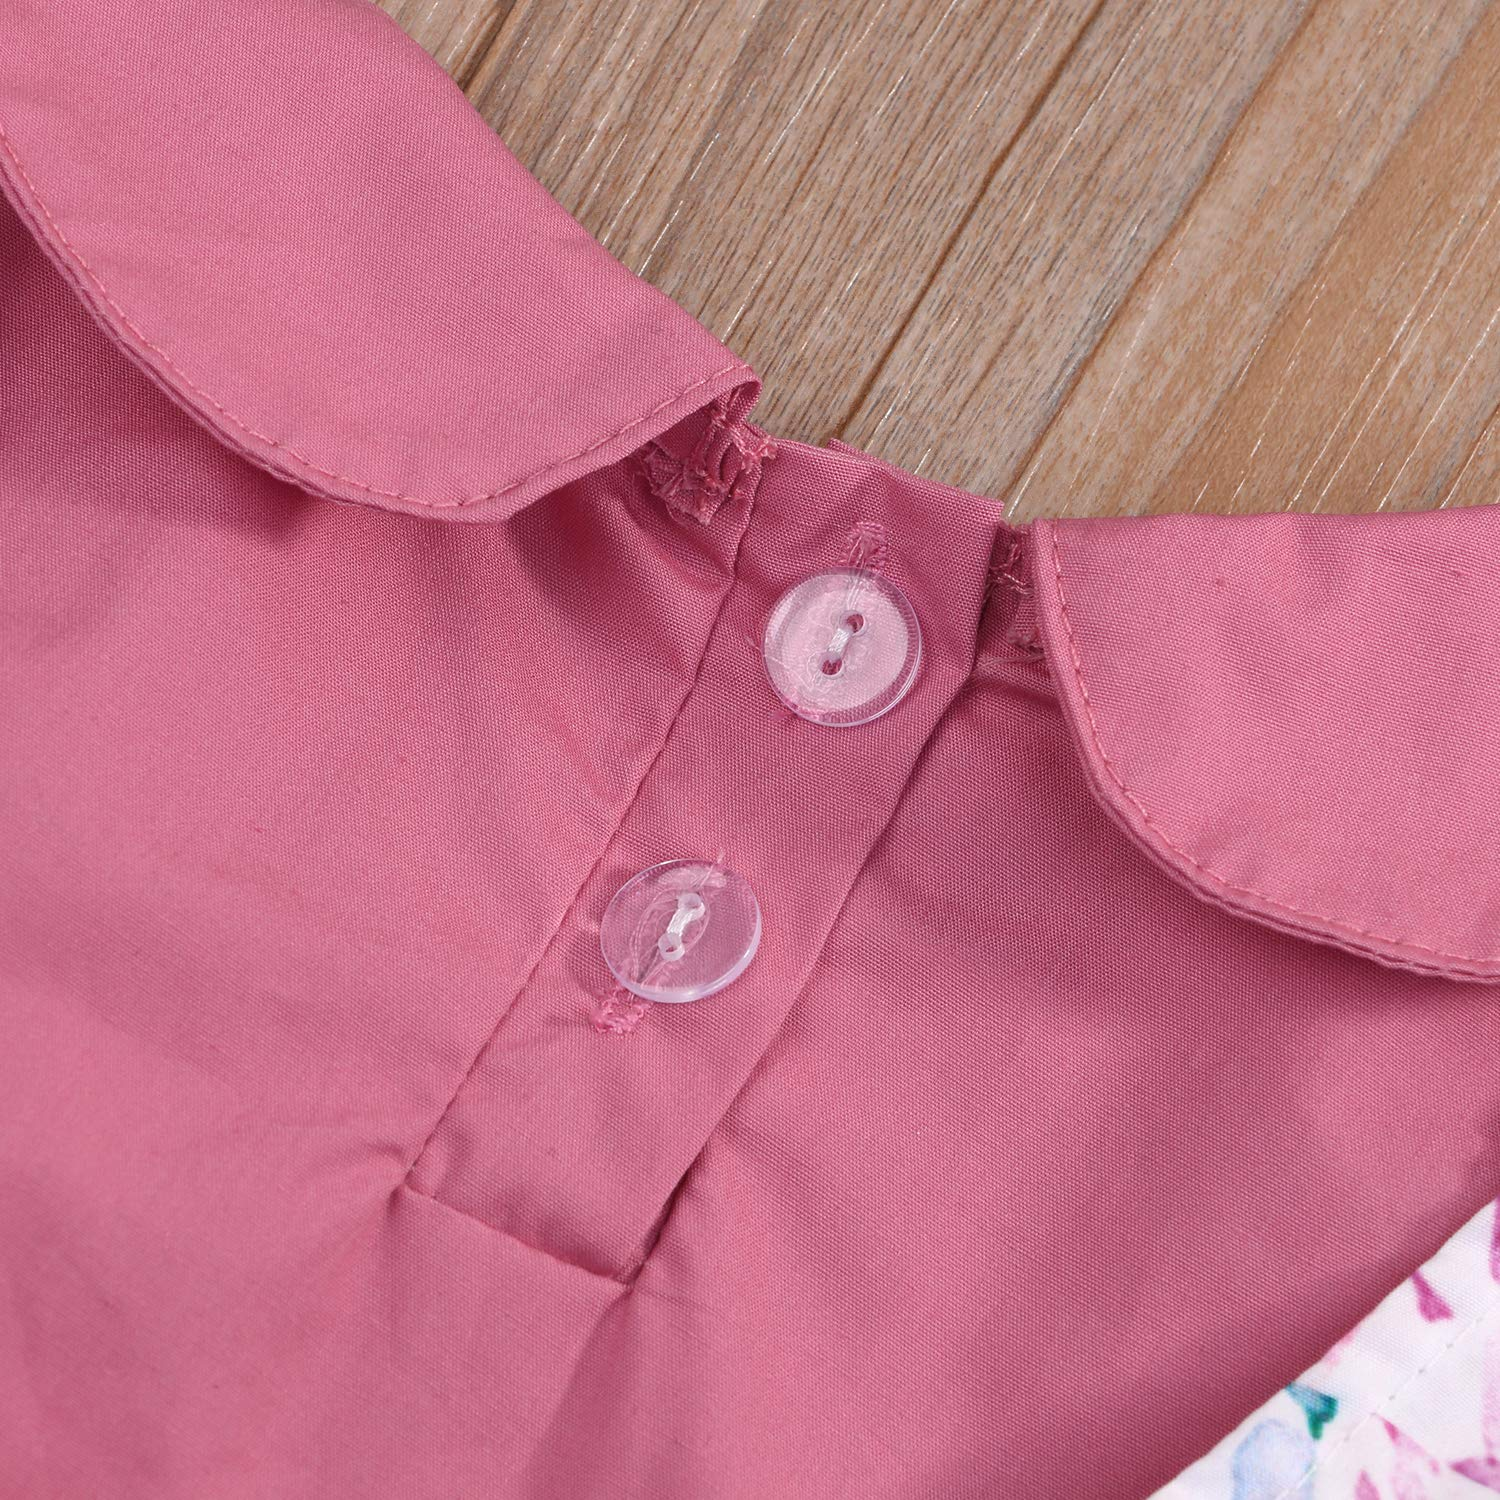 Strap Floral Dress Suits Toddler Baby Girls Clothes Set Short Sleeve Standing Collar Shirts